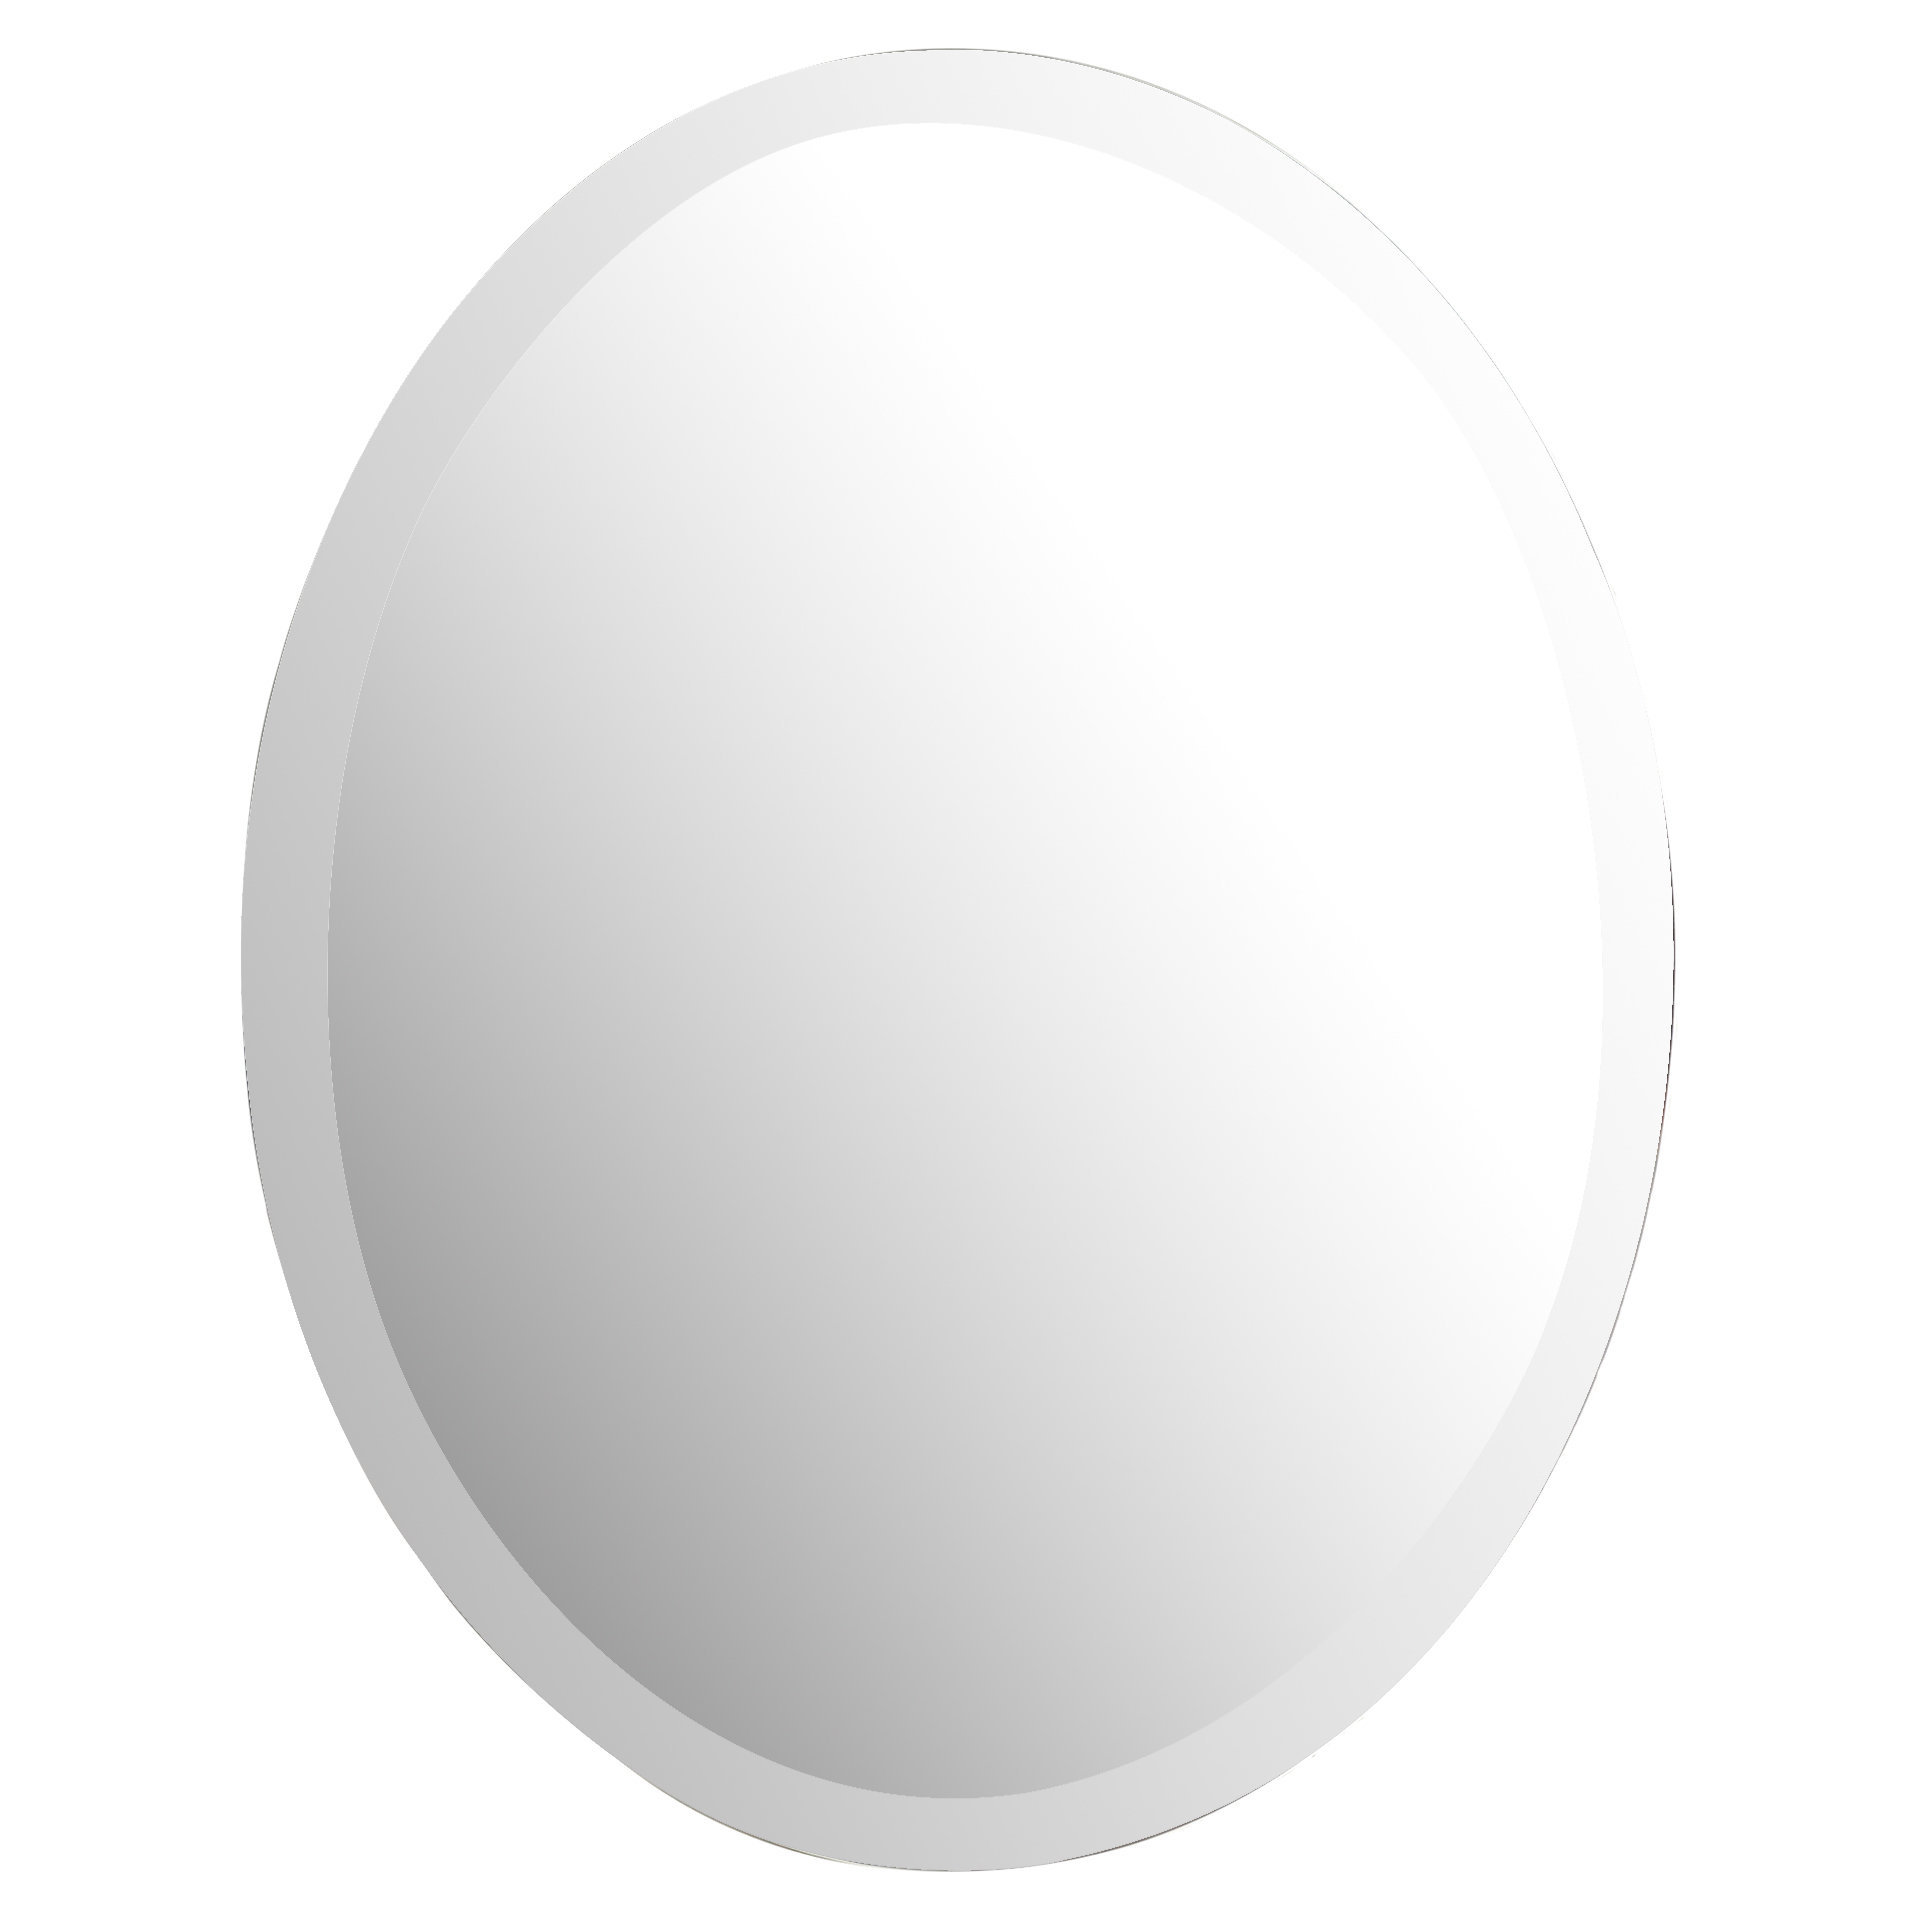 Gaunts Earthcott Mirror Intended For Gaunts Earthcott Modern & Contemporary Beveled Accent Mirrors (View 5 of 20)